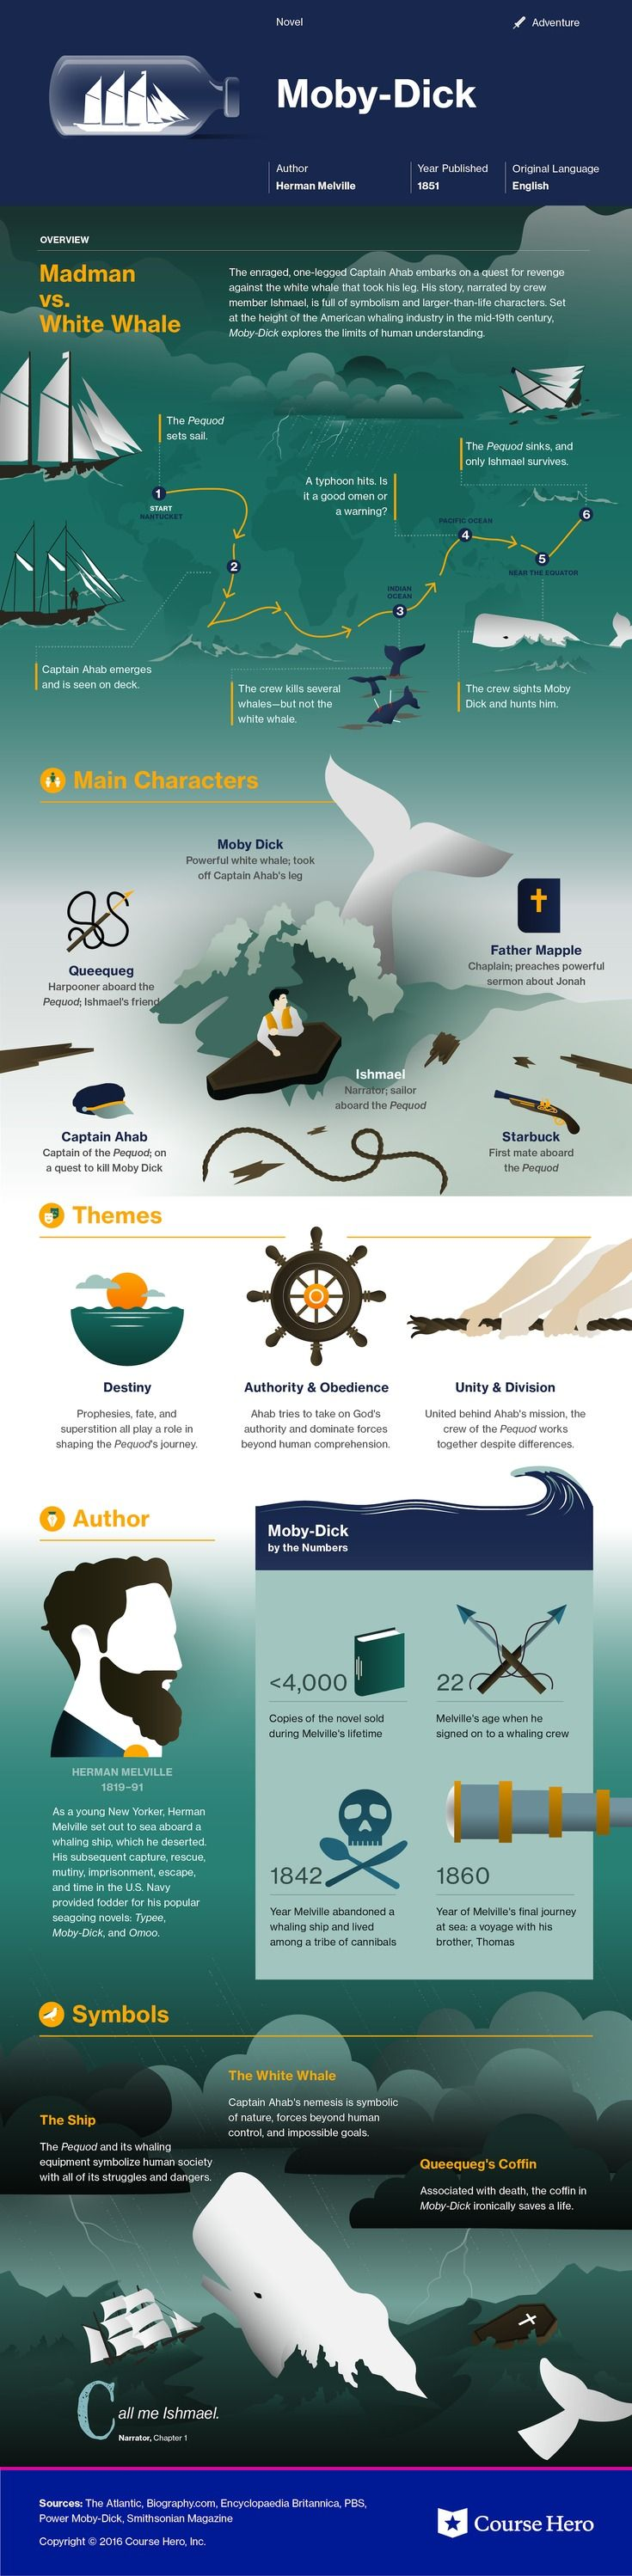 images about literature infographic course hero on this coursehero infographic on moby dick is both visually stunning and informative